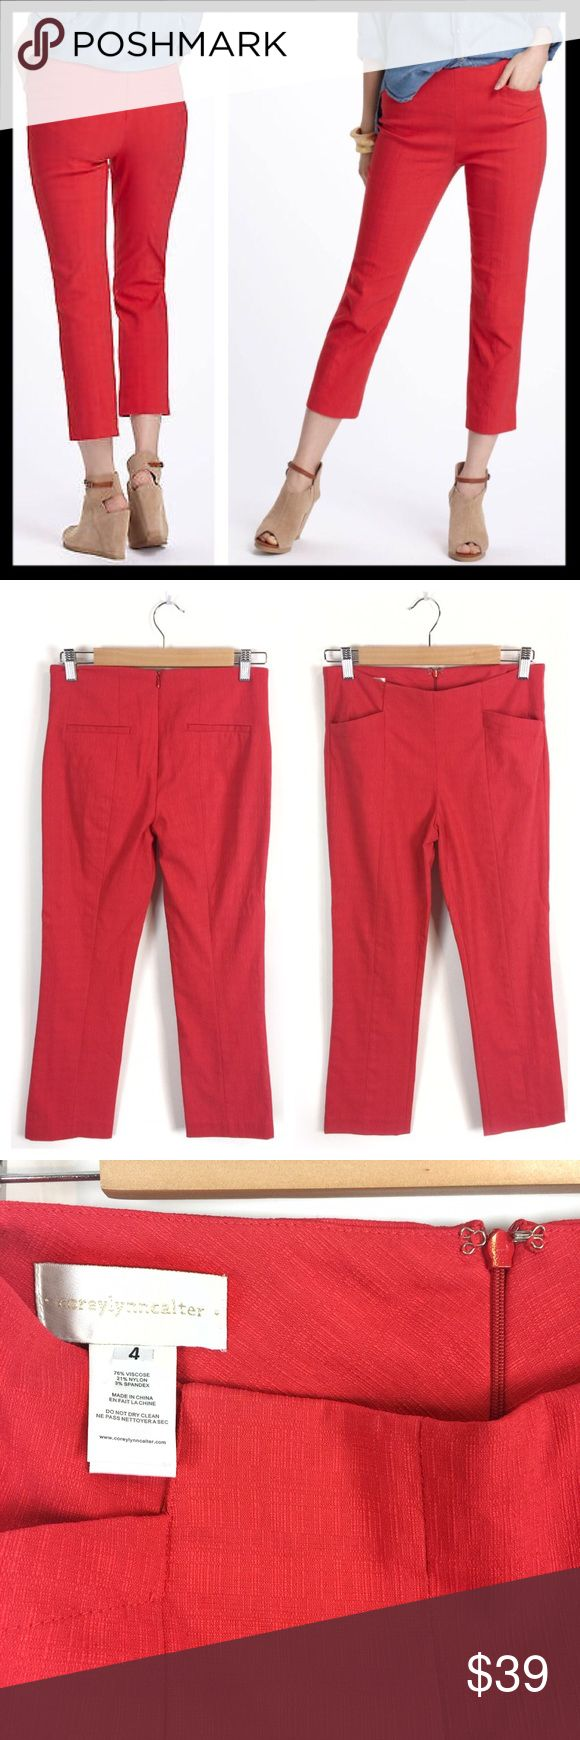 "anthropologie // corey lynn calter nella trousers A feminine take on archetypal men's tailoring, with a shorter length and a bit of stretch. By Corey Lynn Calter. Back zip. Front and back pockets. Viscose/nylon/spandex. Machine wash. 24.75"" inseam. Color is a cheerful coral red. Excellent condition. Anthropologie Pants"